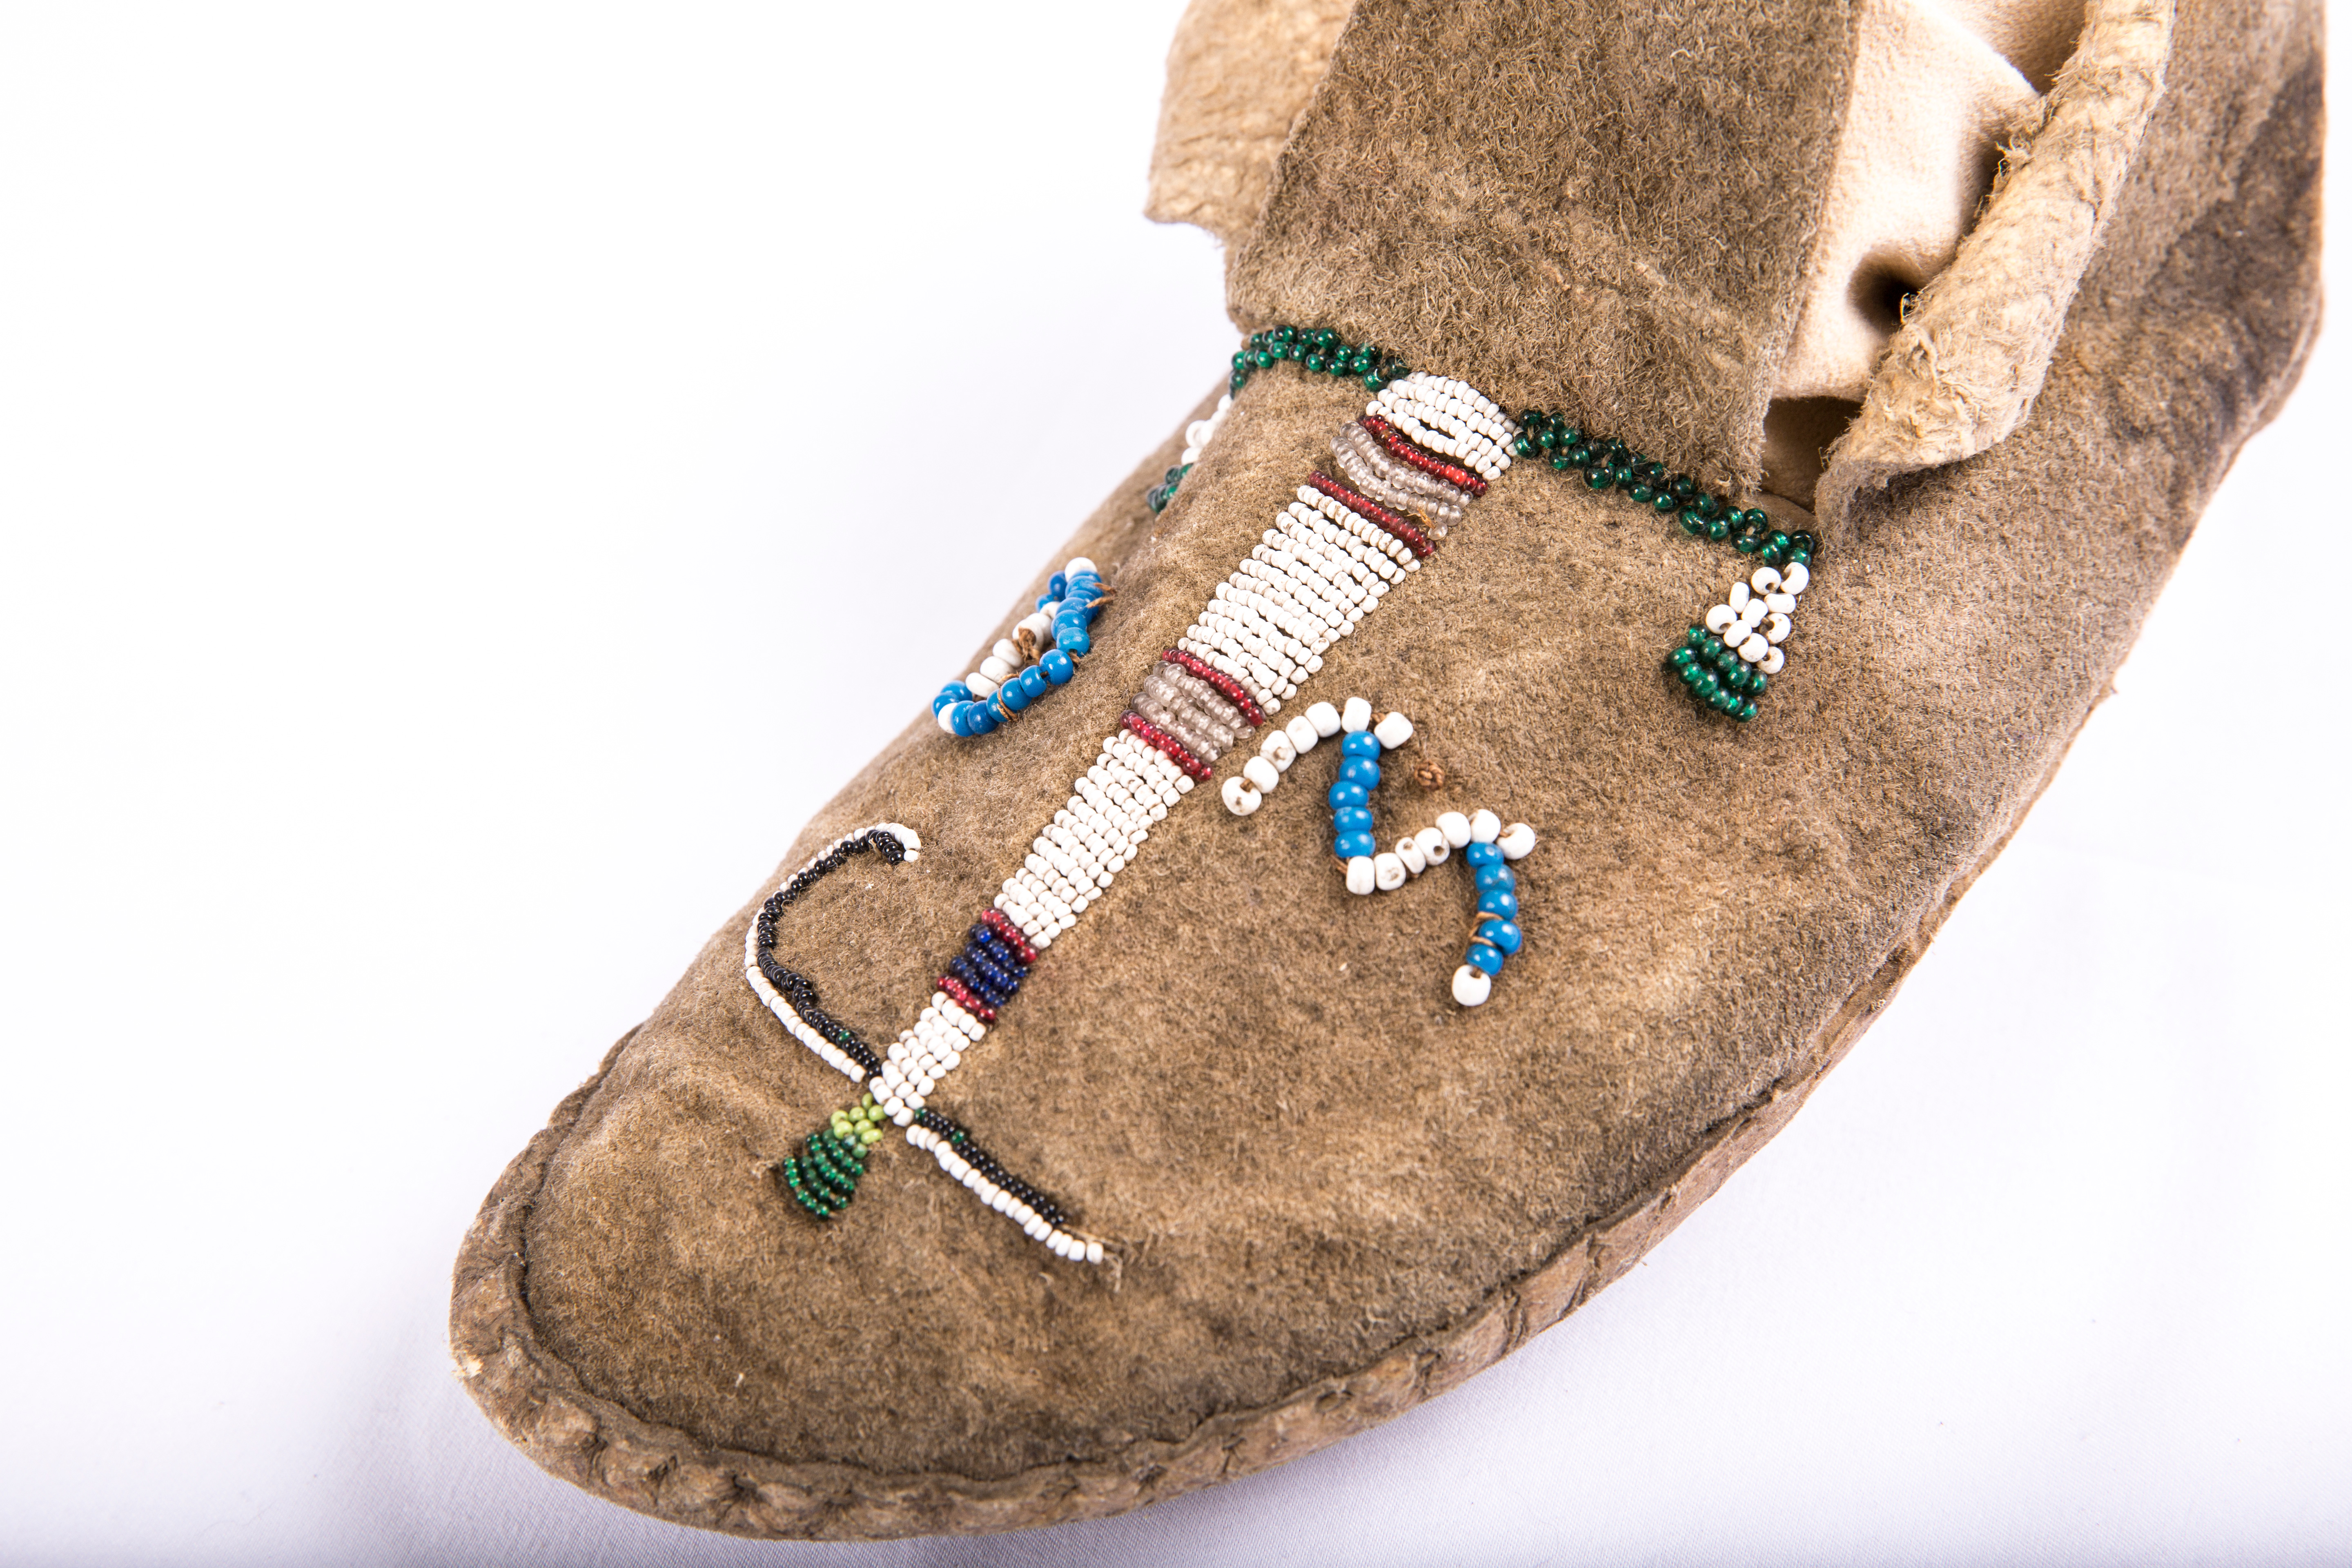 Close-up of beaded moccasin (left foot)